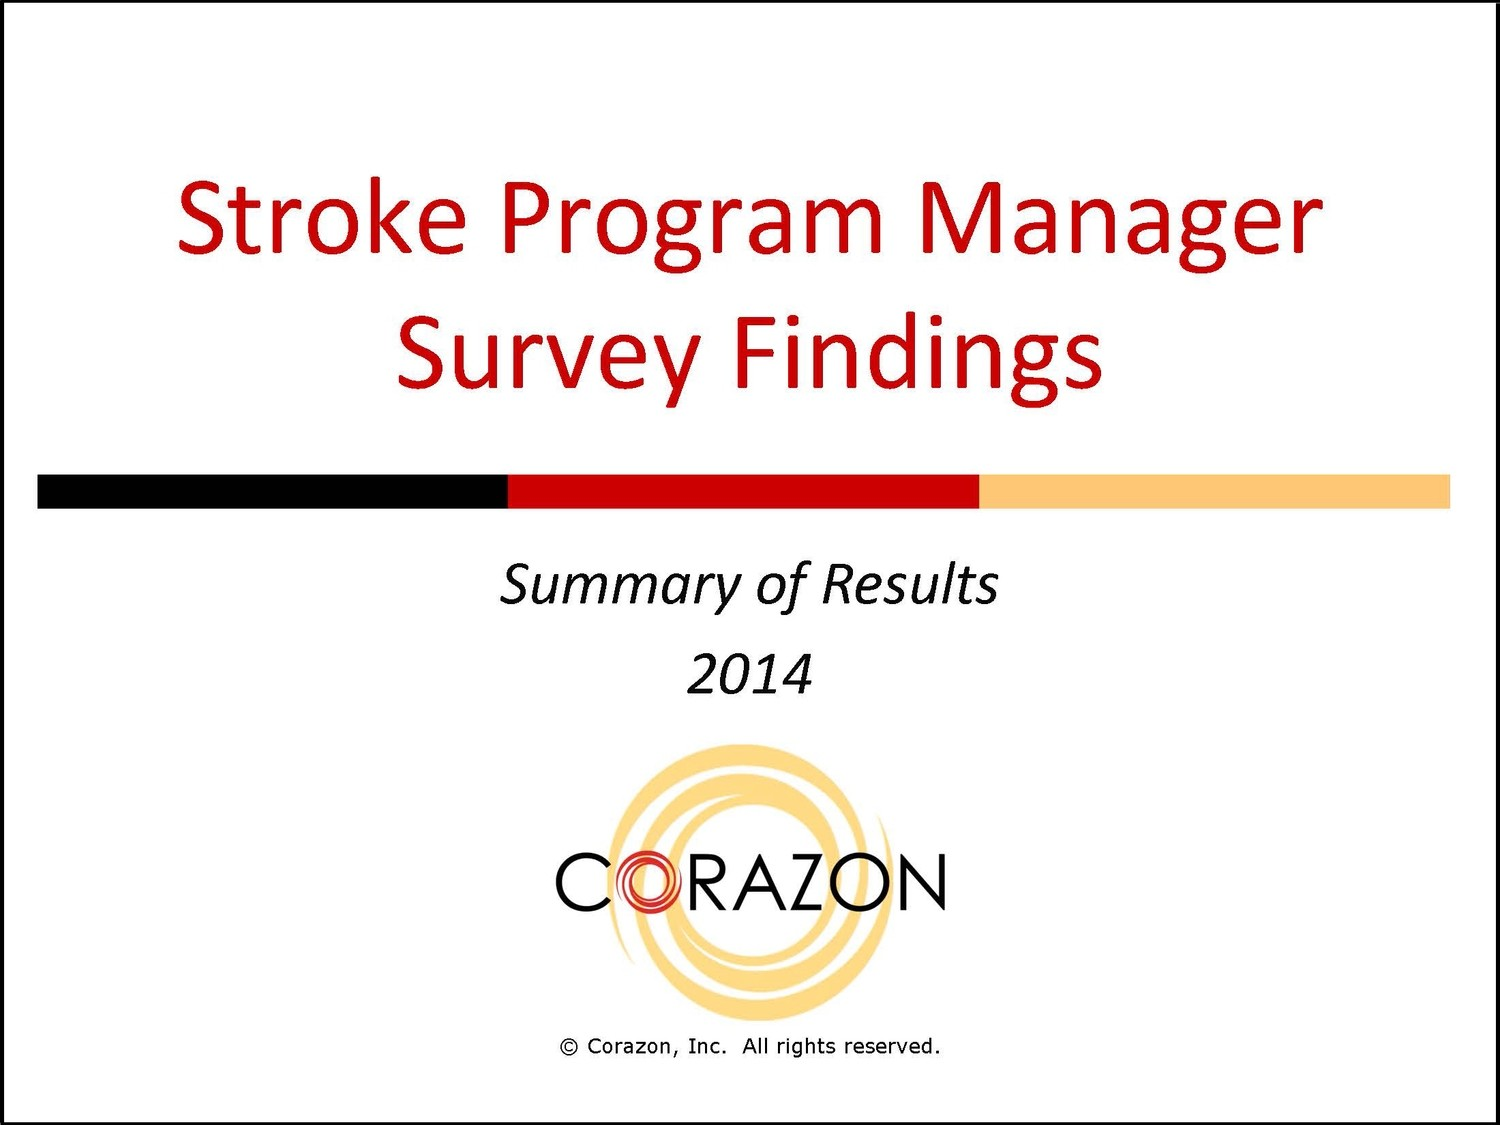 Stroke Program Manager Survey Findings